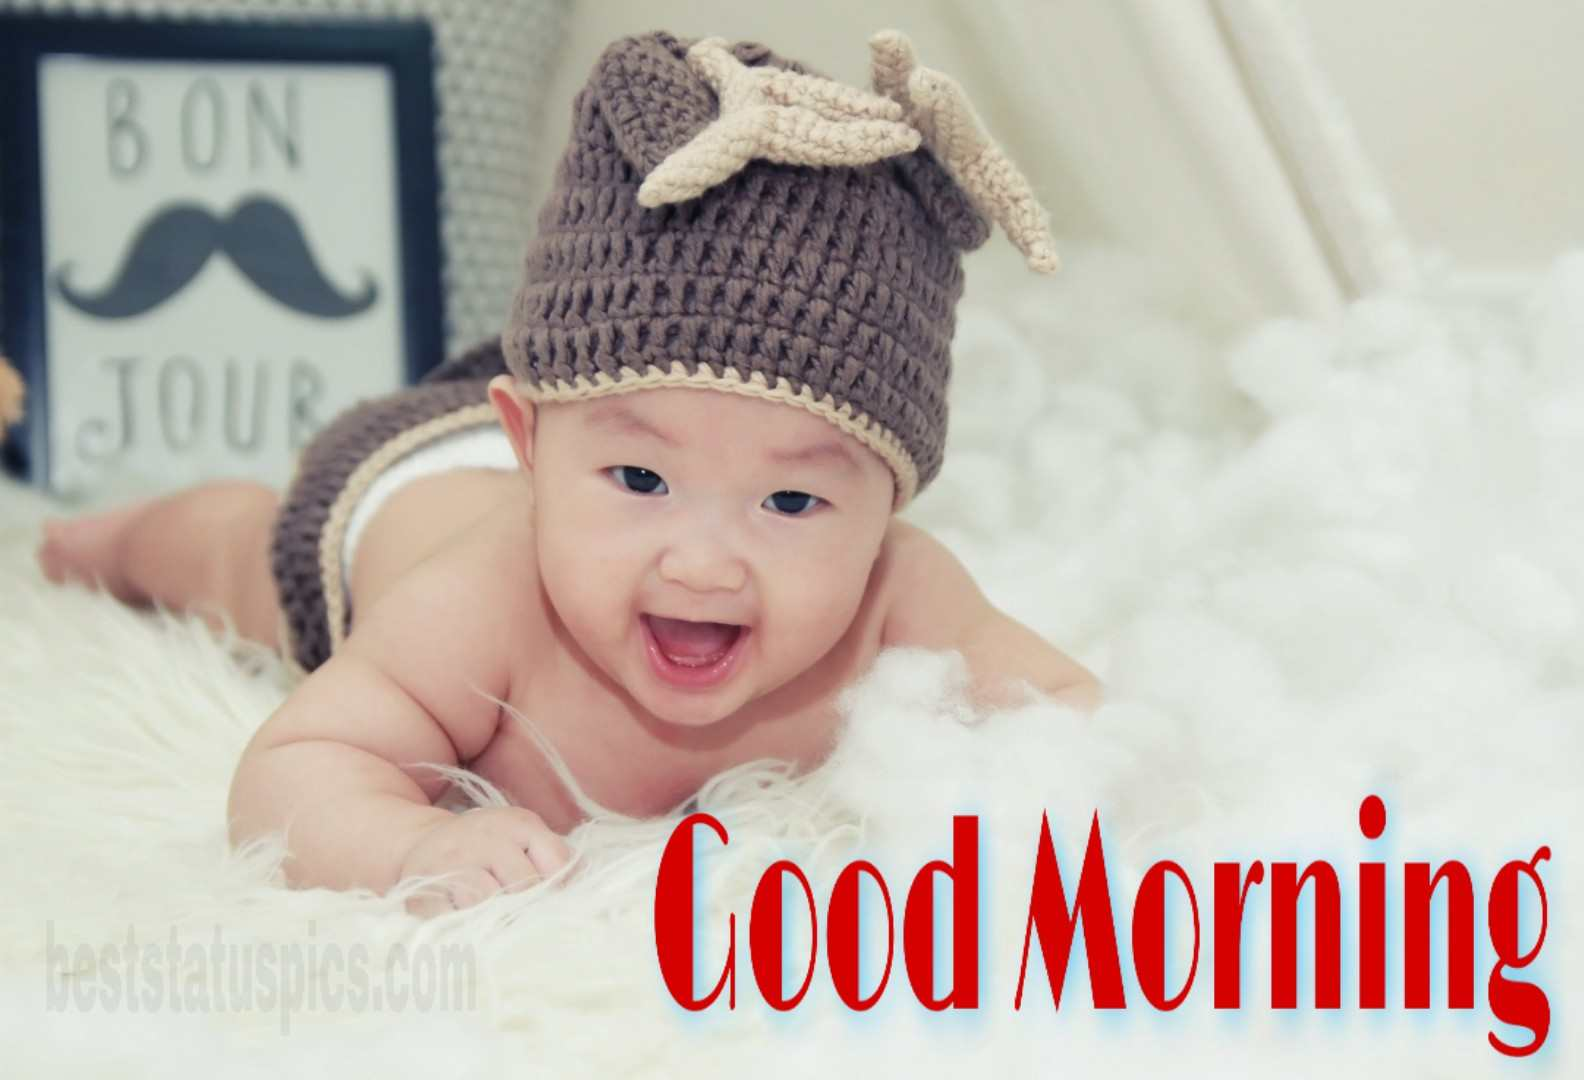 Cute baby funny good morning images whatsapp